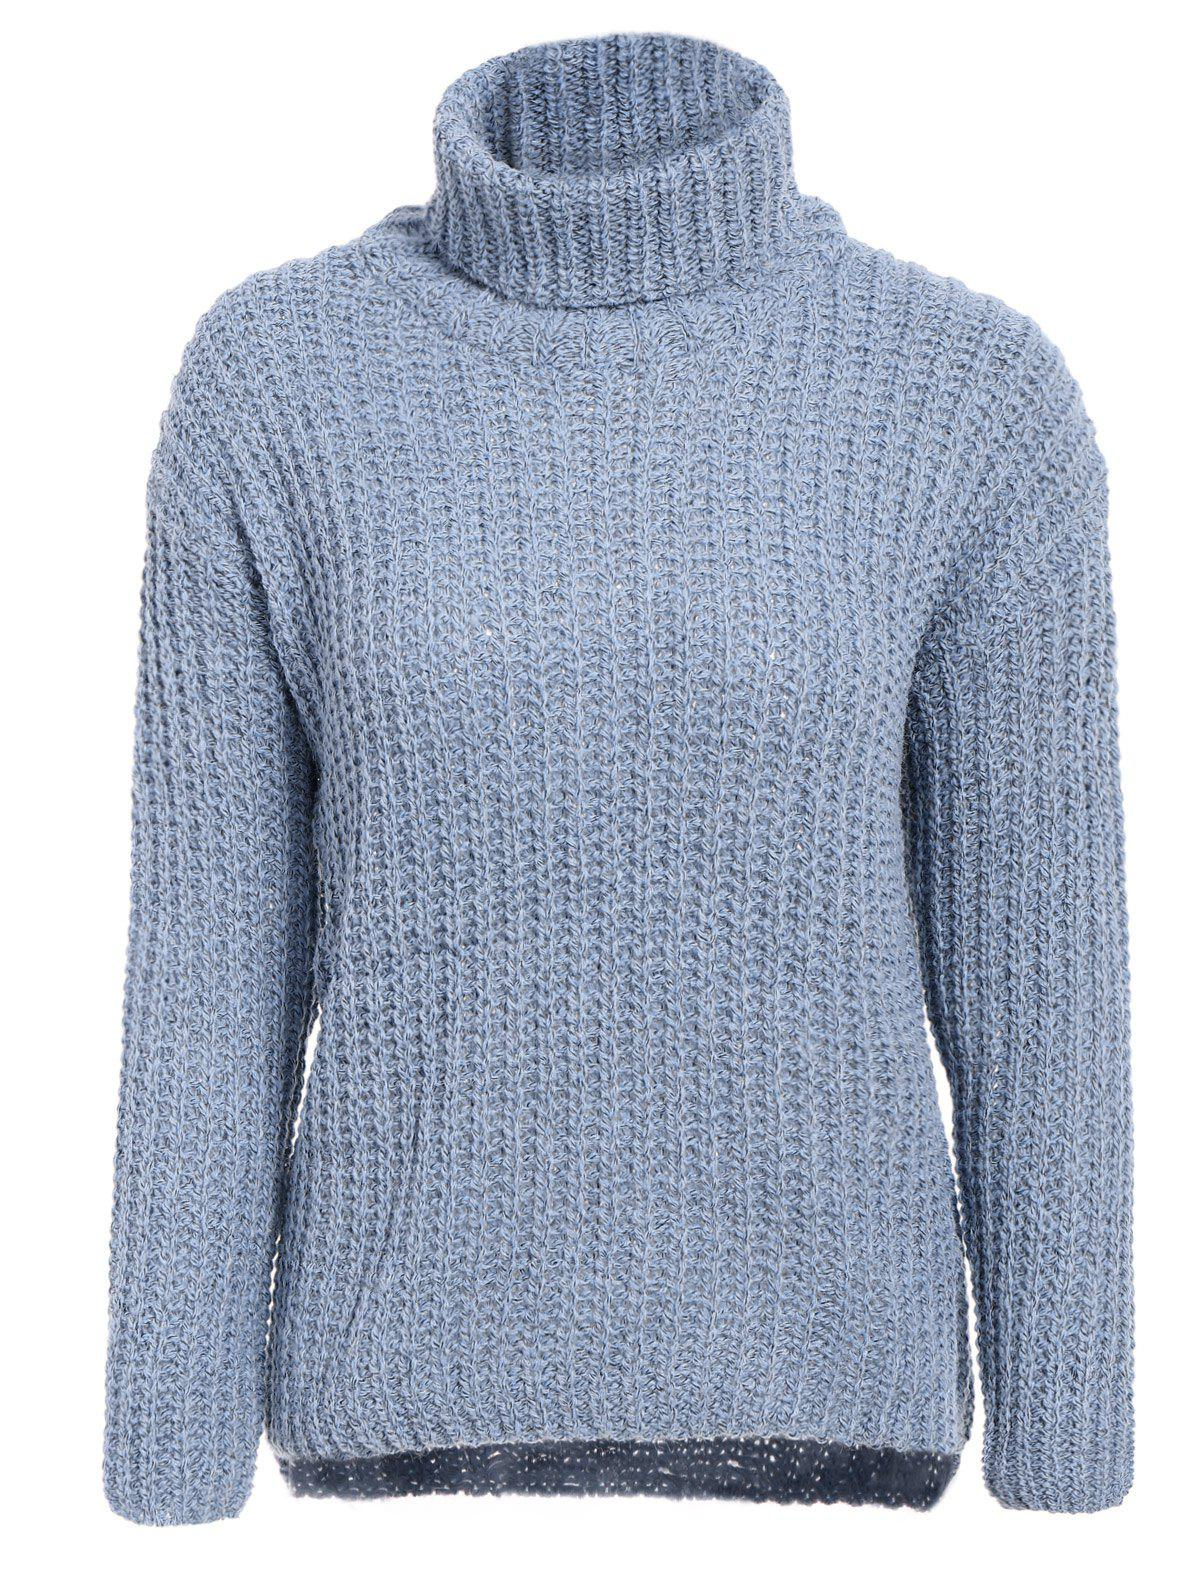 Stylish Women's Turtleneck Long Sleeve High-Low Sweater - BLUE GRAY ONE SIZE(FIT SIZE XS TO M)